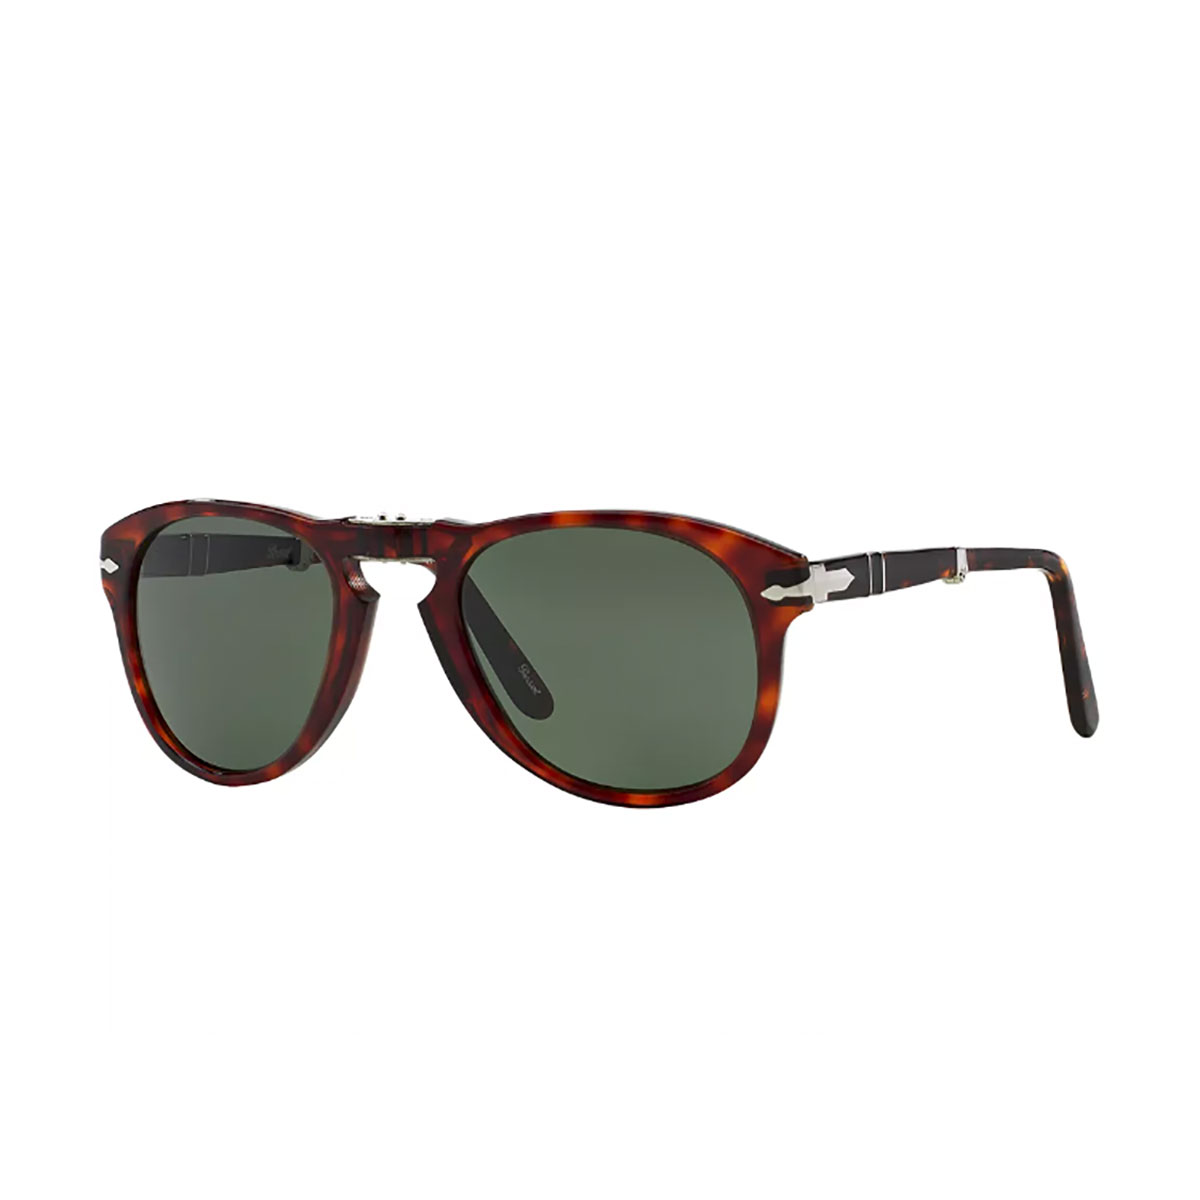 Gifts for Brother: Persol Sunglasses at Macy's